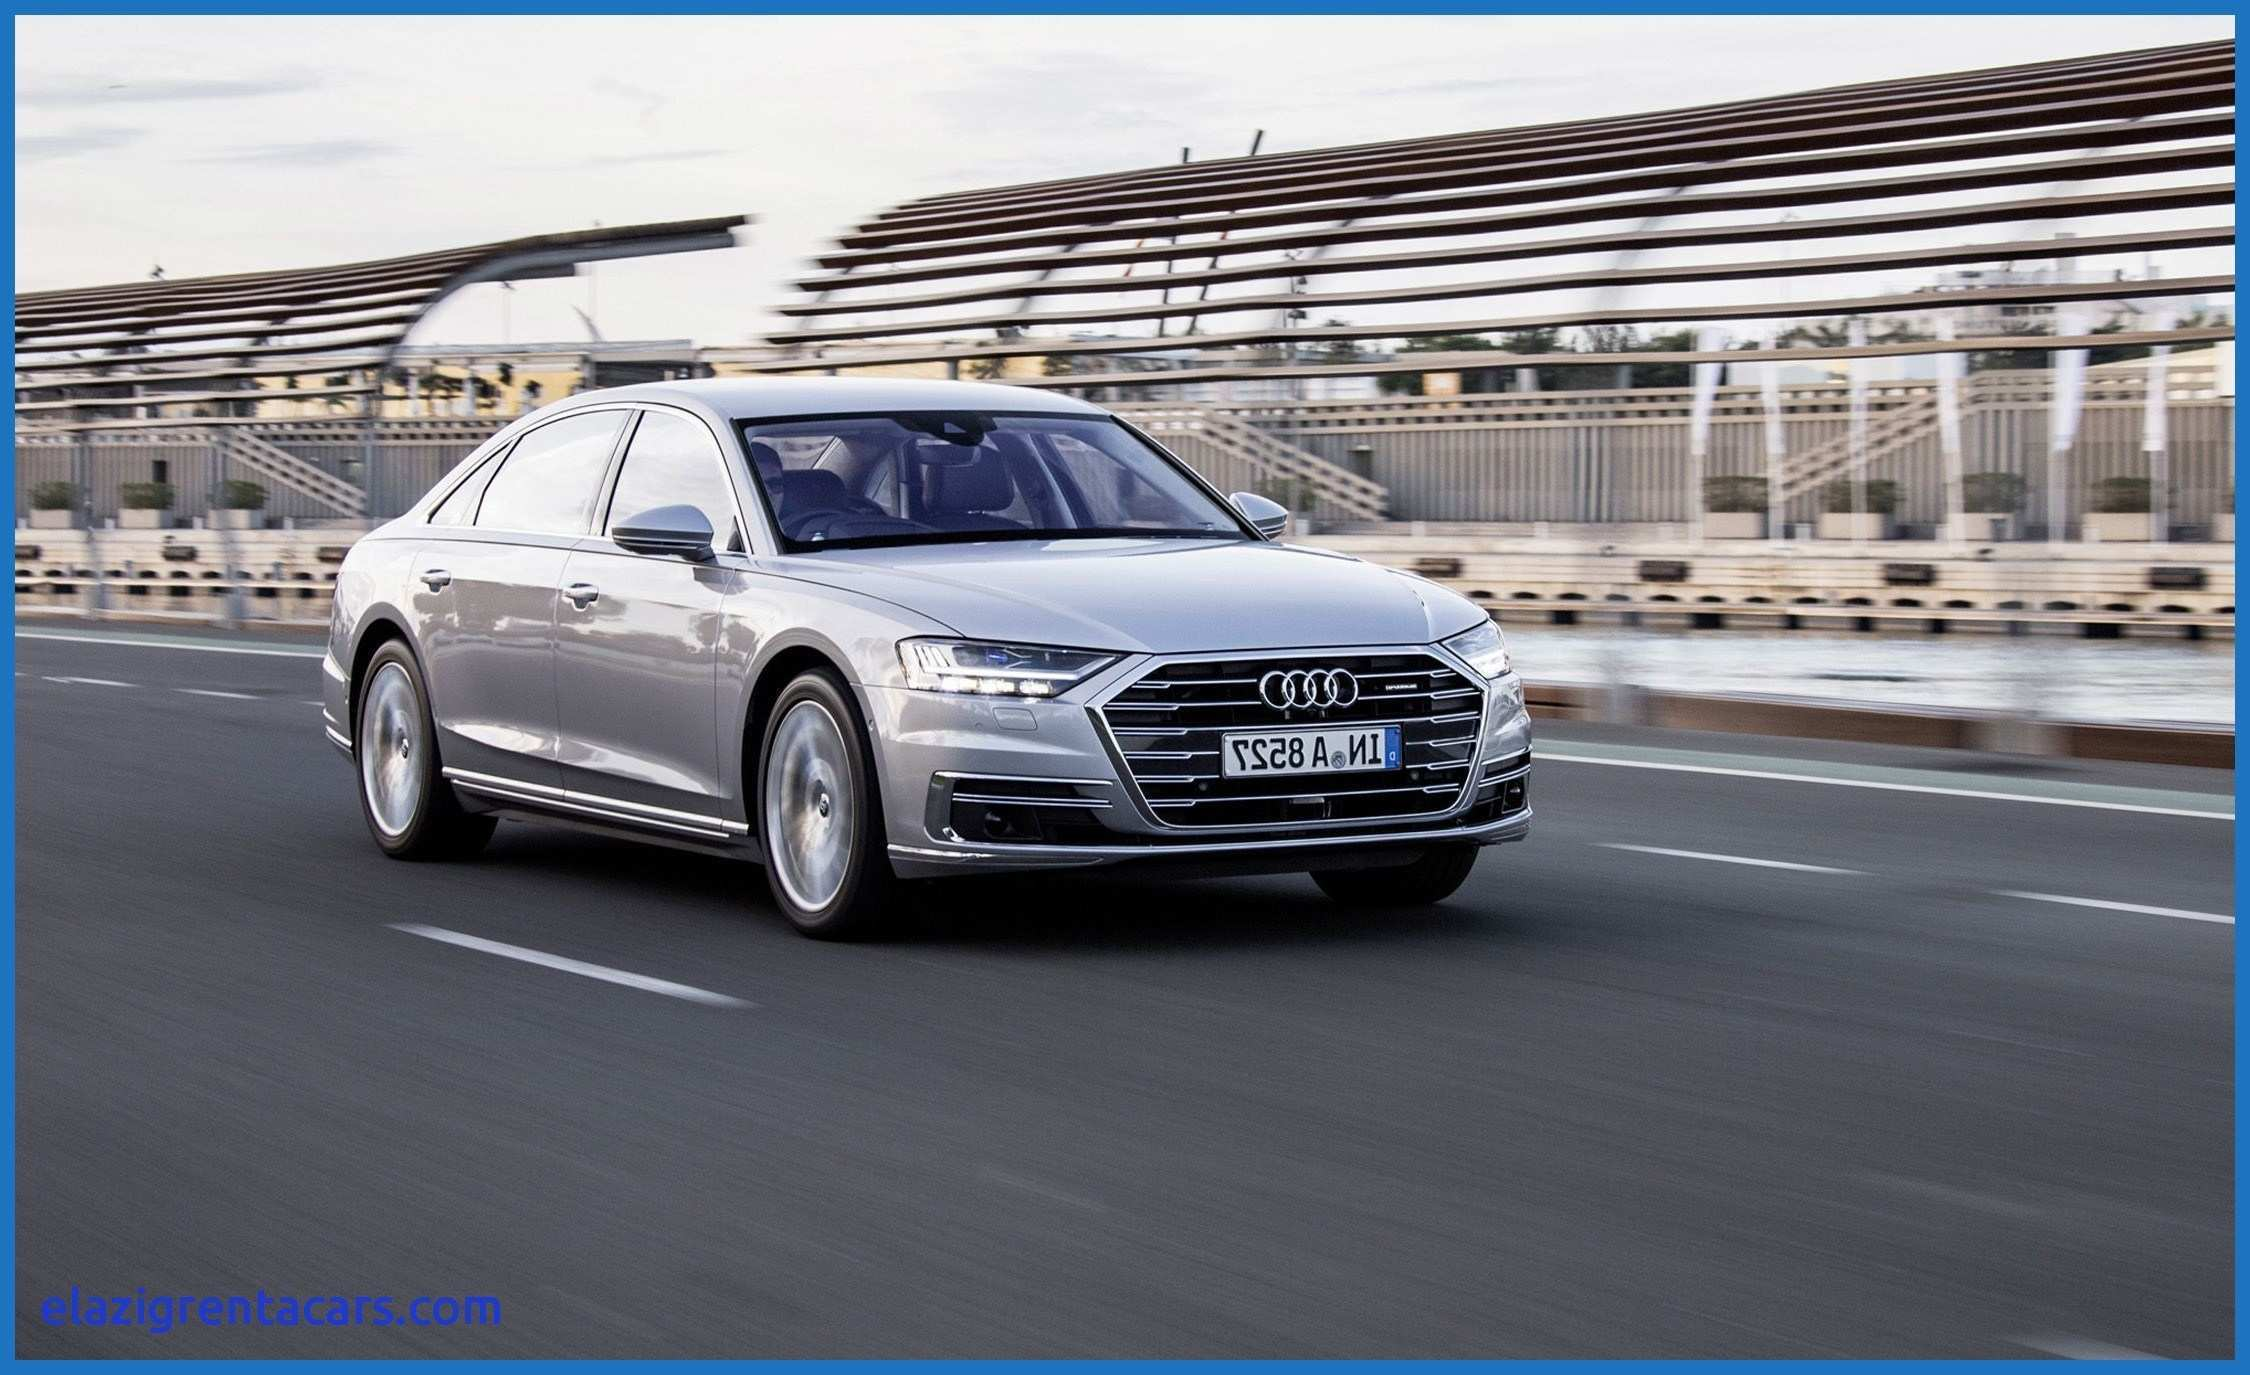 96 A 2019 Audi A8 L In Usa Redesign